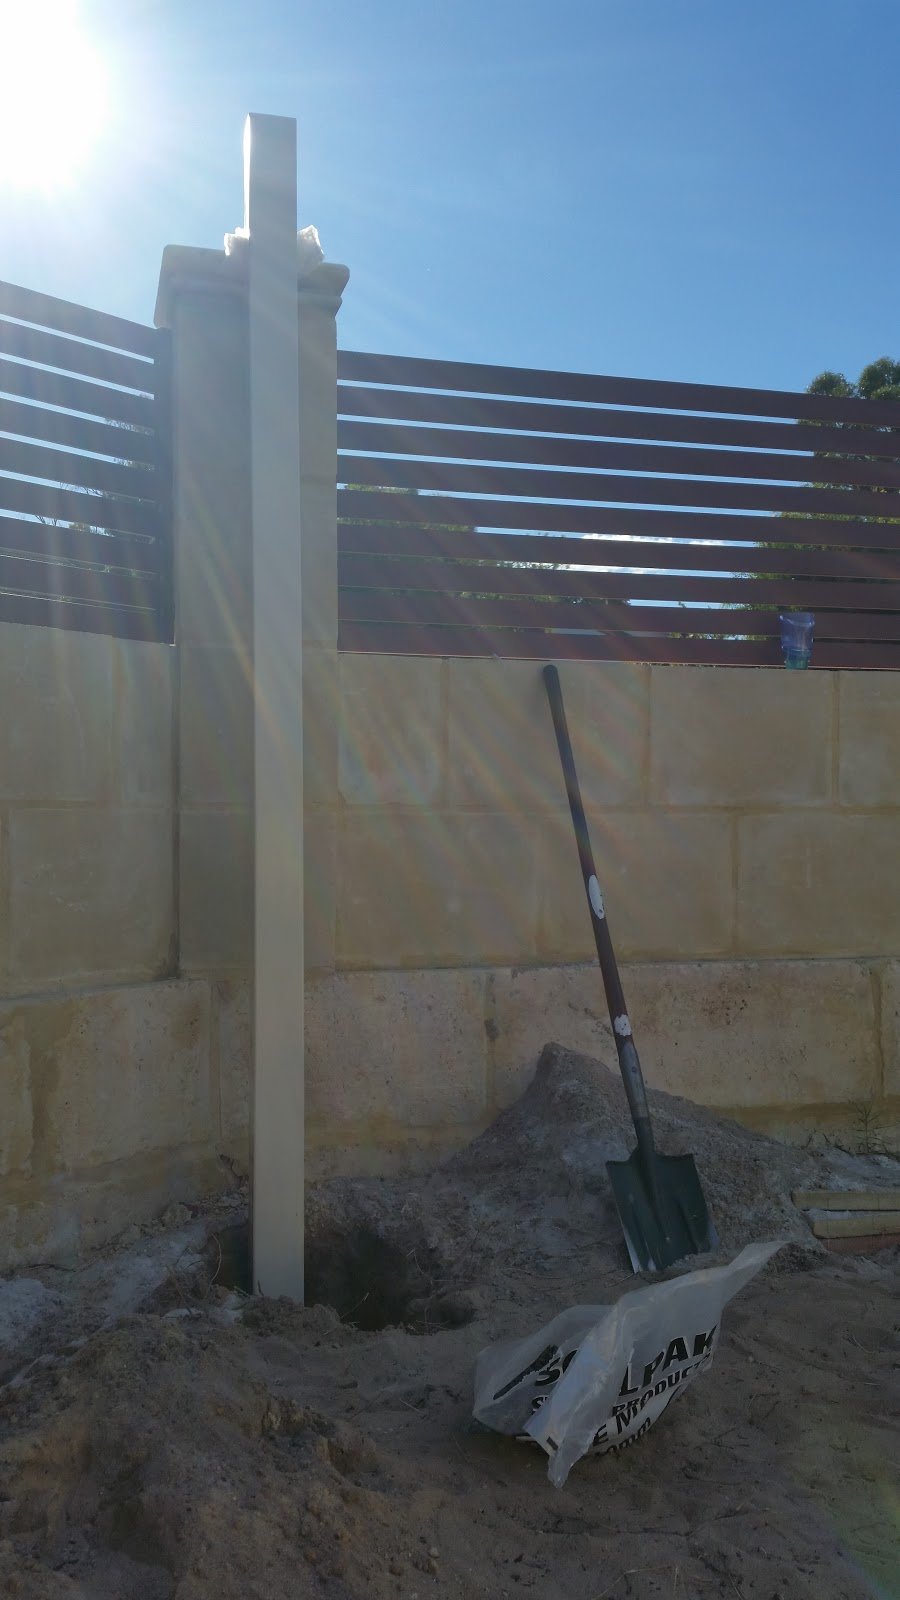 Jarrah Jungle: A DIY On How To Install Metal Support Poles